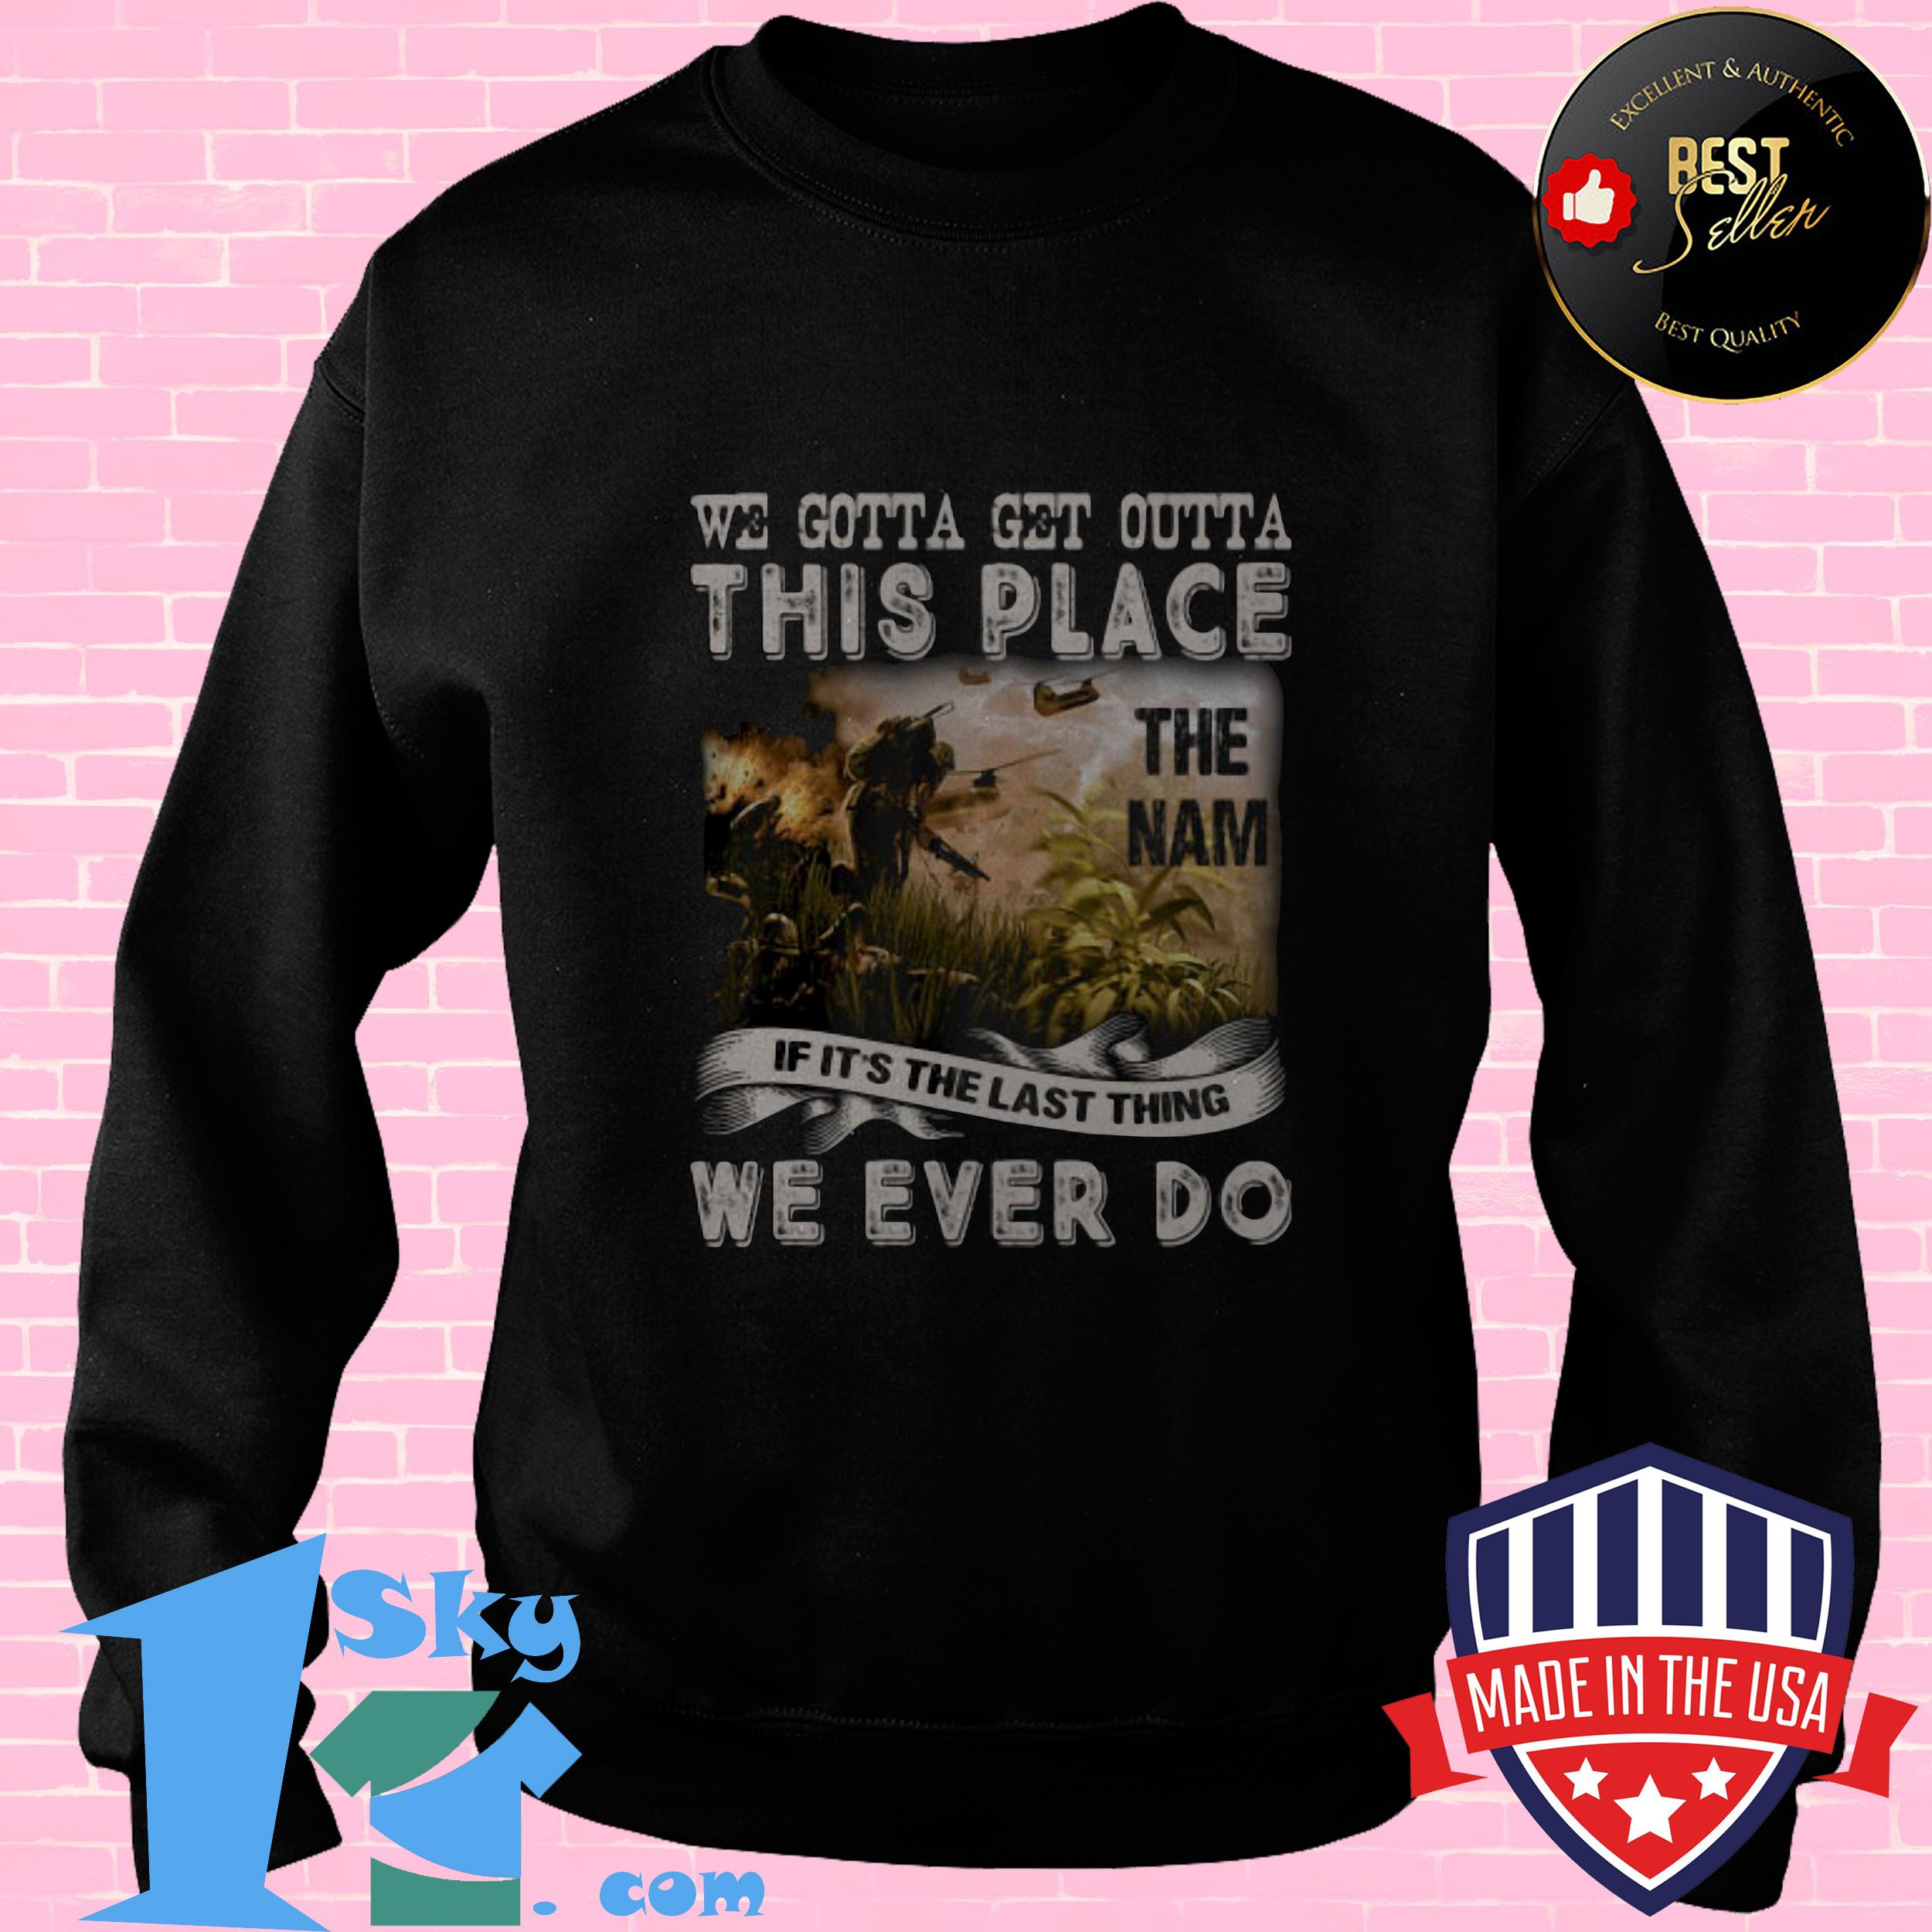 we gotta get outta this place the name we ever do veteran sweatshirt - We Gotta Get Outta This Place The Name We Ever Do Veteran shirt